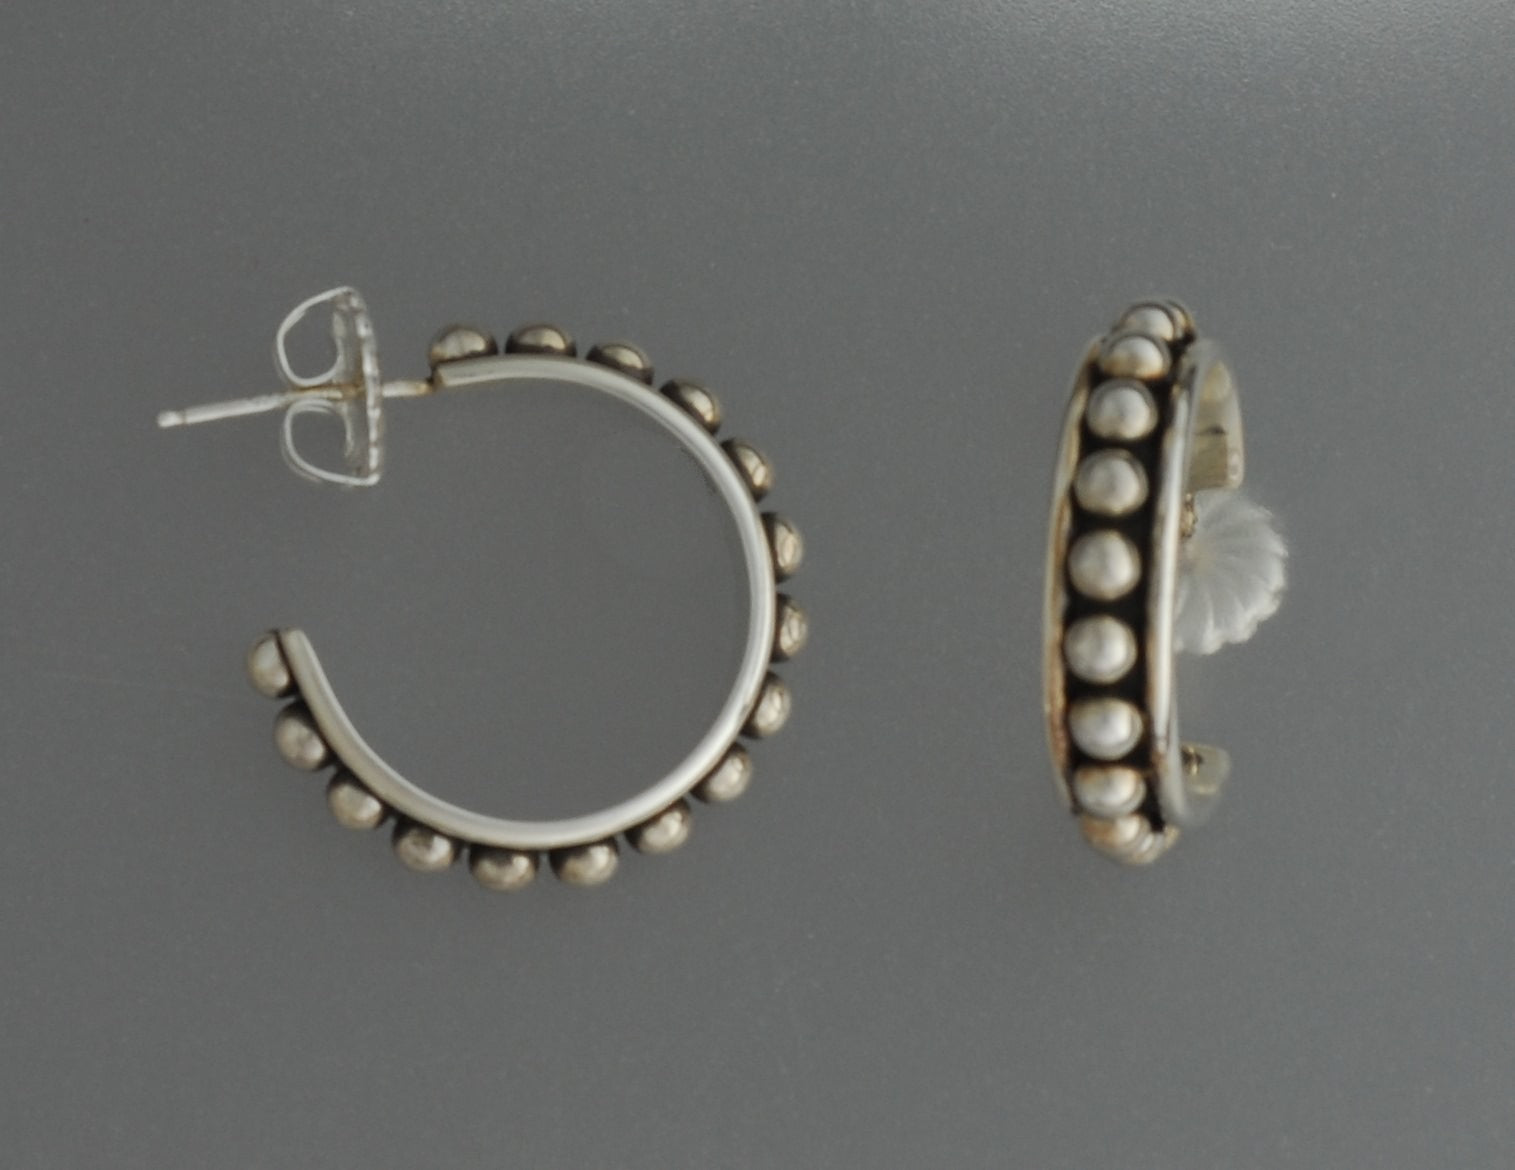 Earrings, Sterling Silver Half-Hoops by Artie Yellowhorse (Navajo)